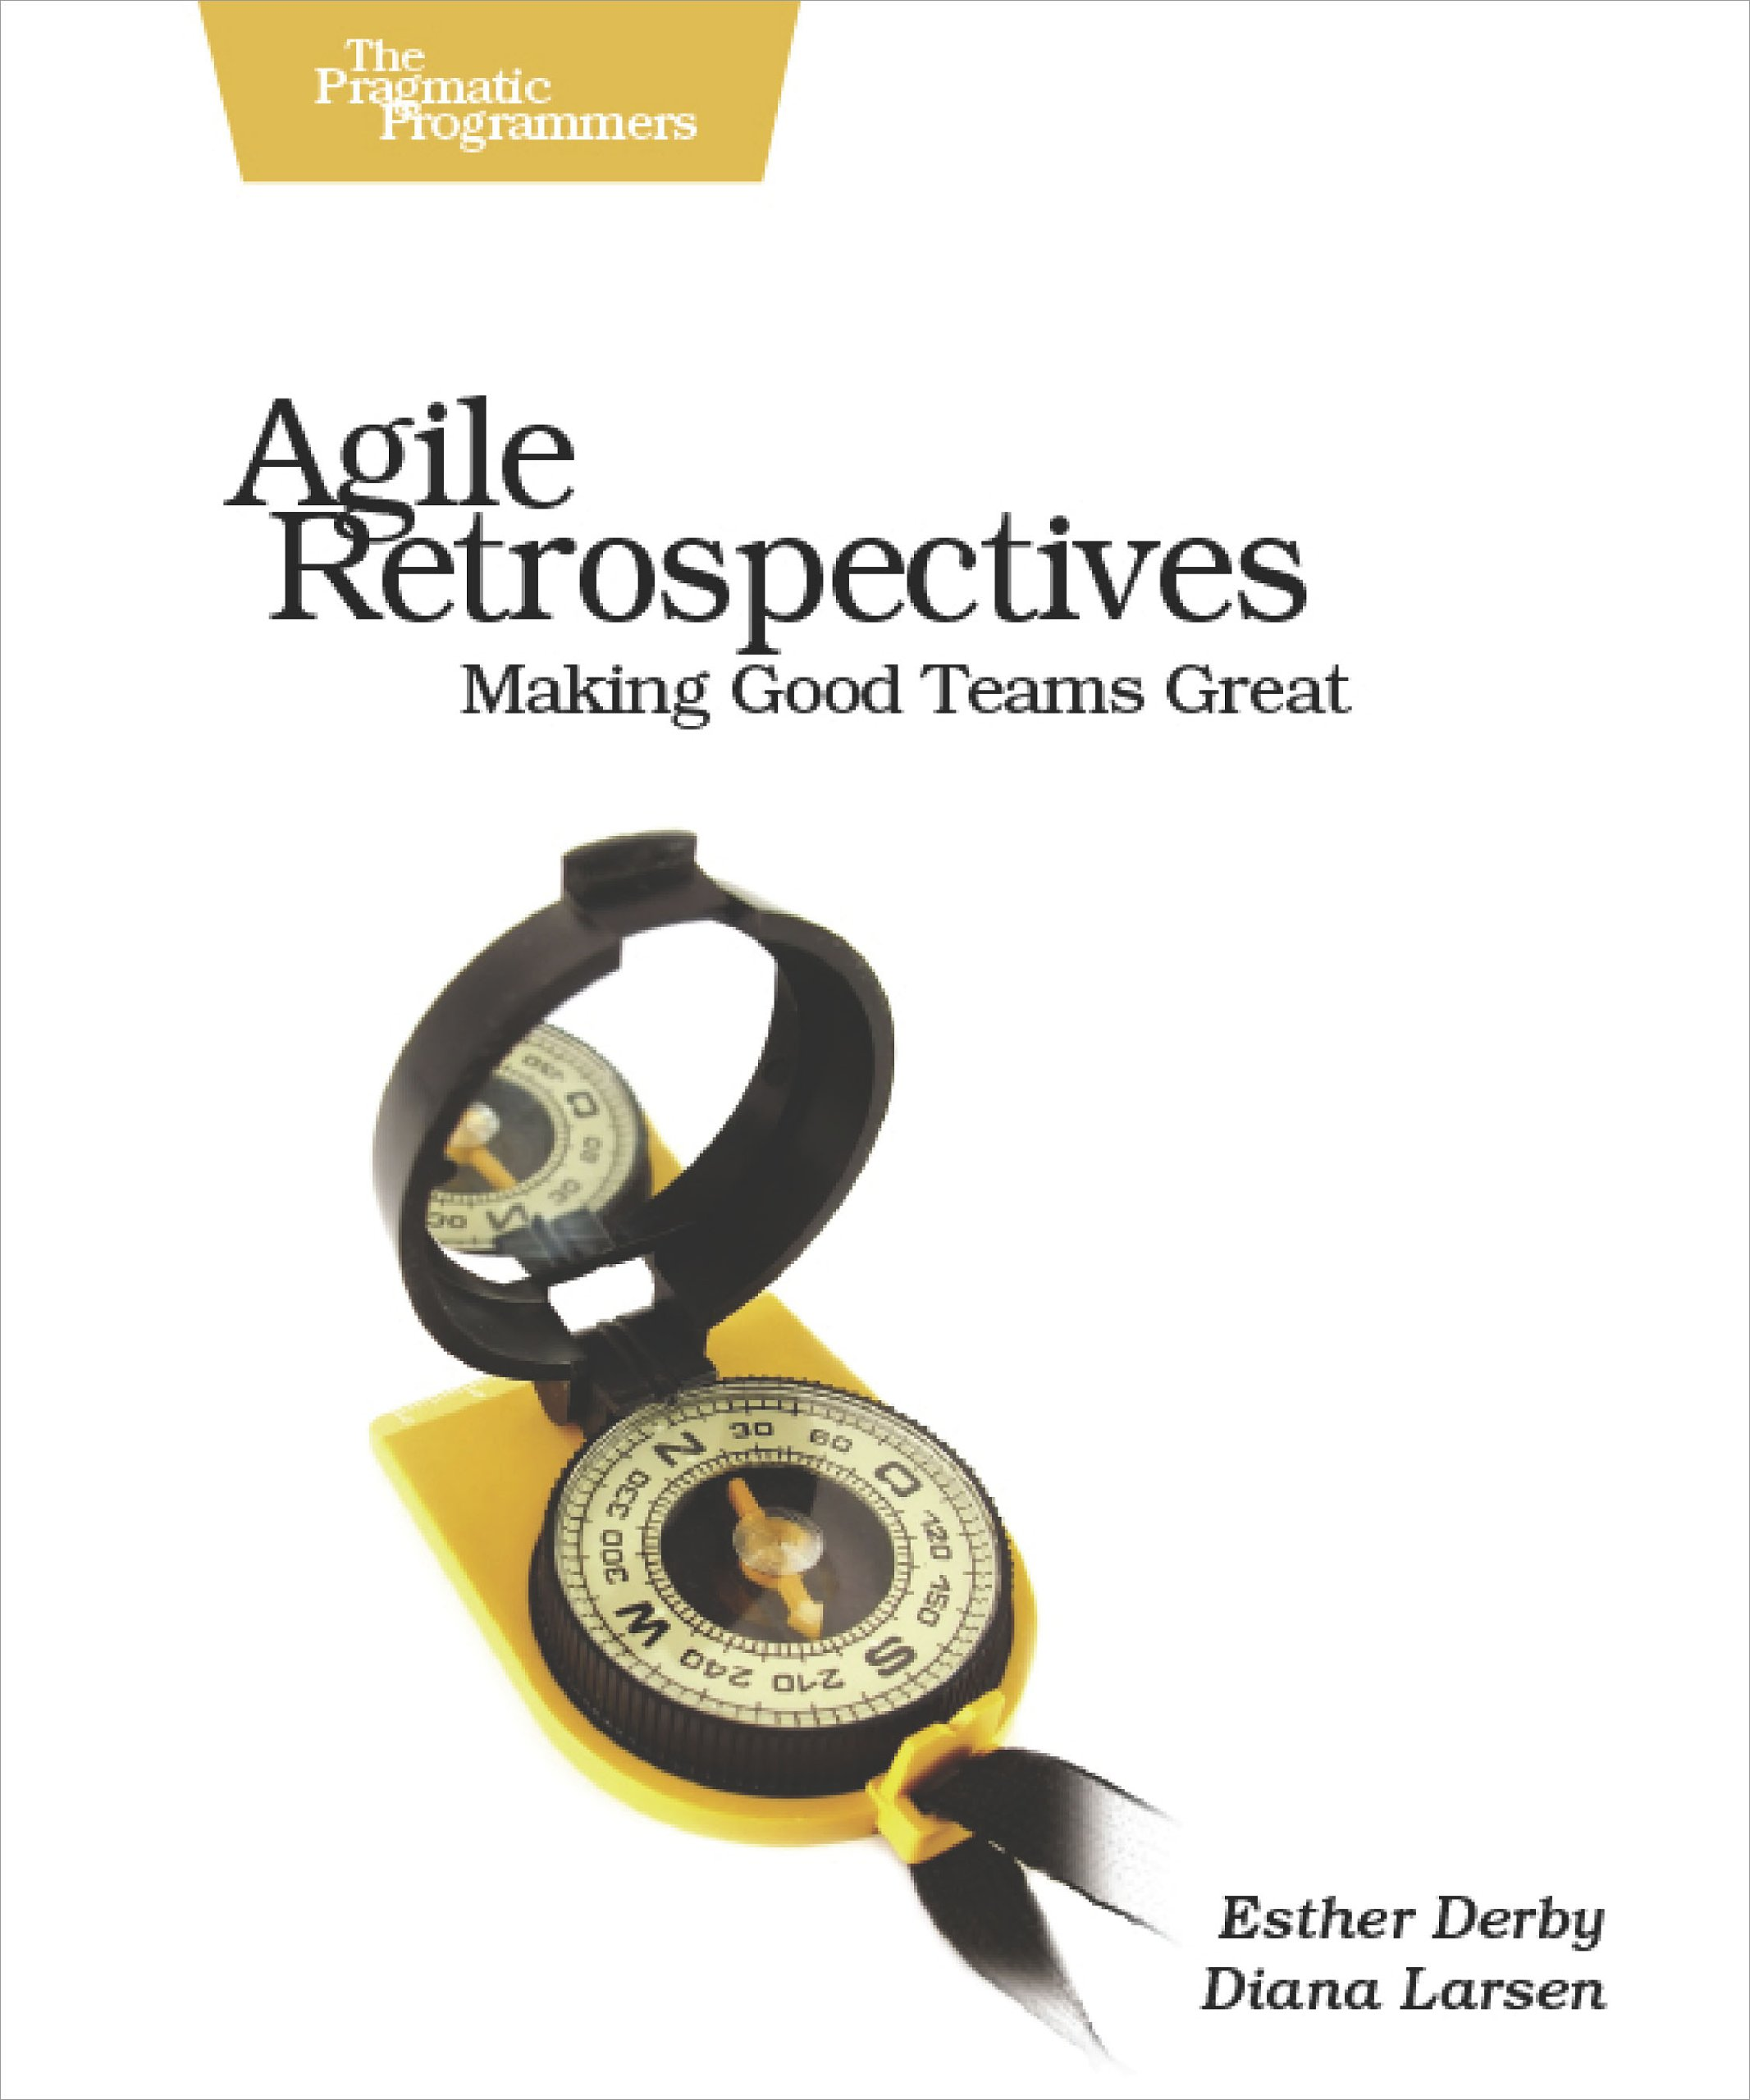 Image OfAgile Retrospectives: Making Good Teams Great (Pragmatic Programmers)